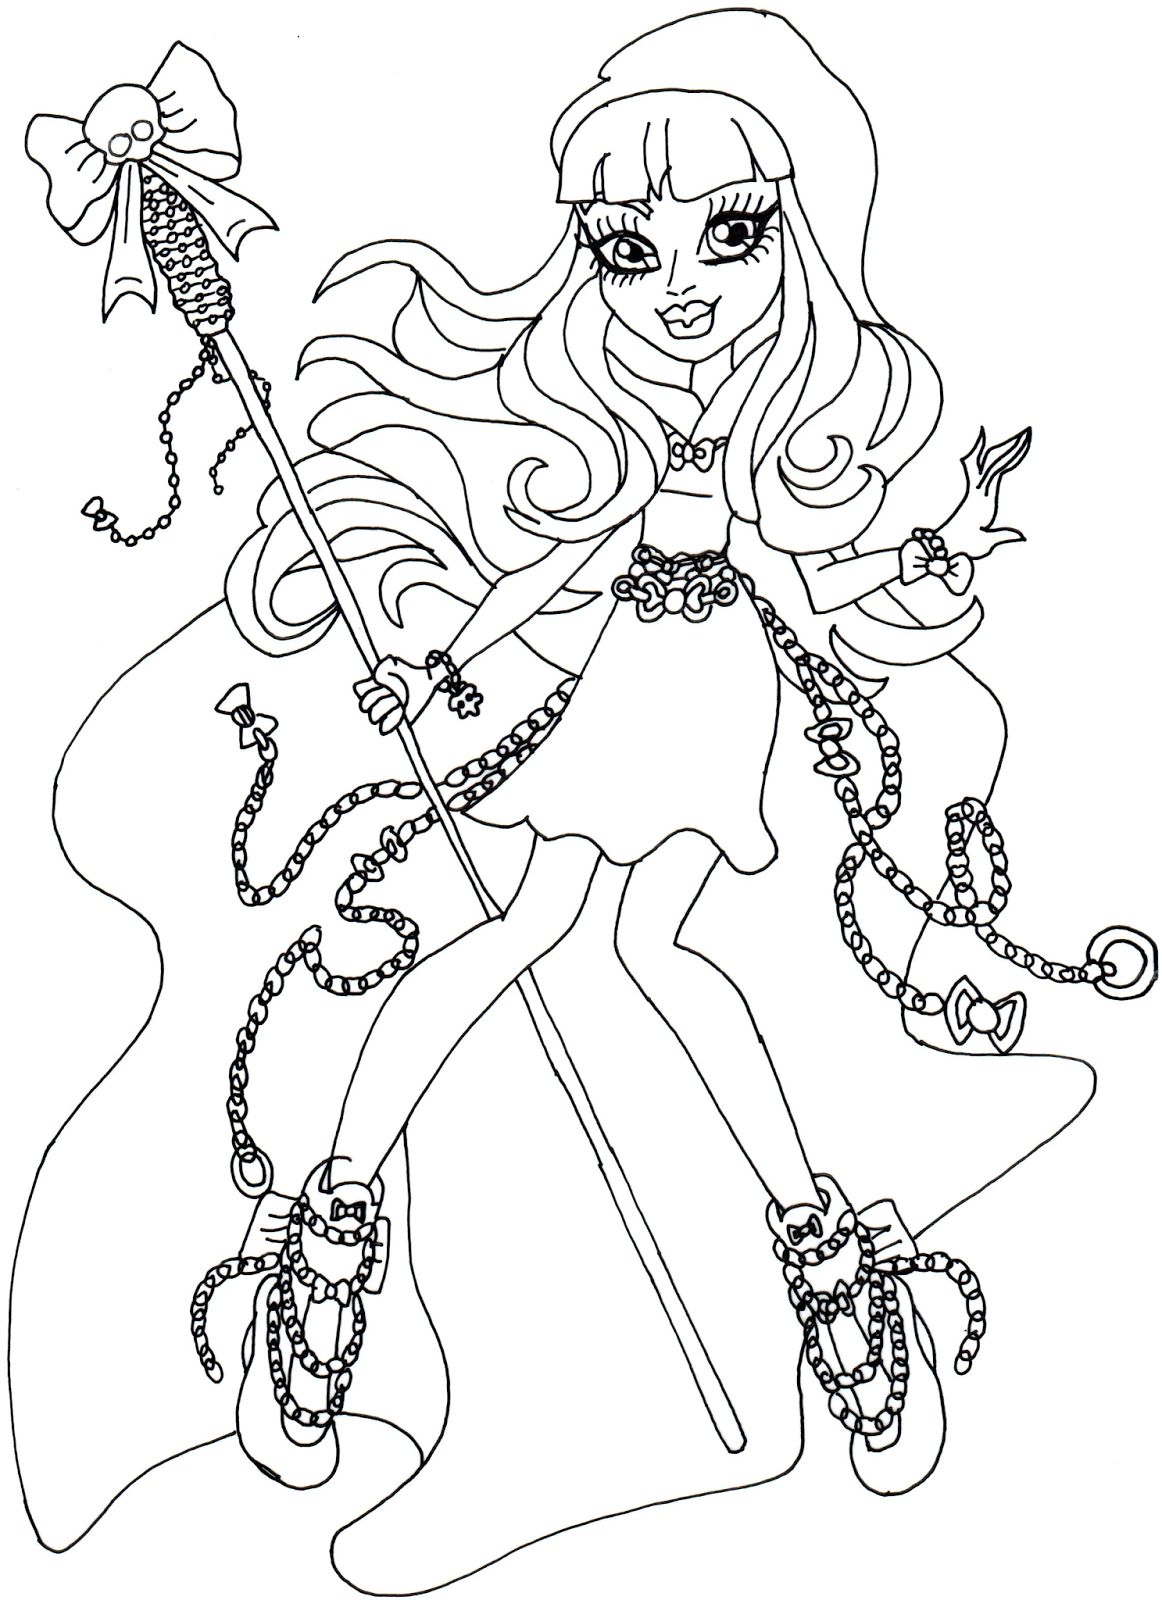 Free printable monster high coloring pages river styxx for Print monster high coloring pages